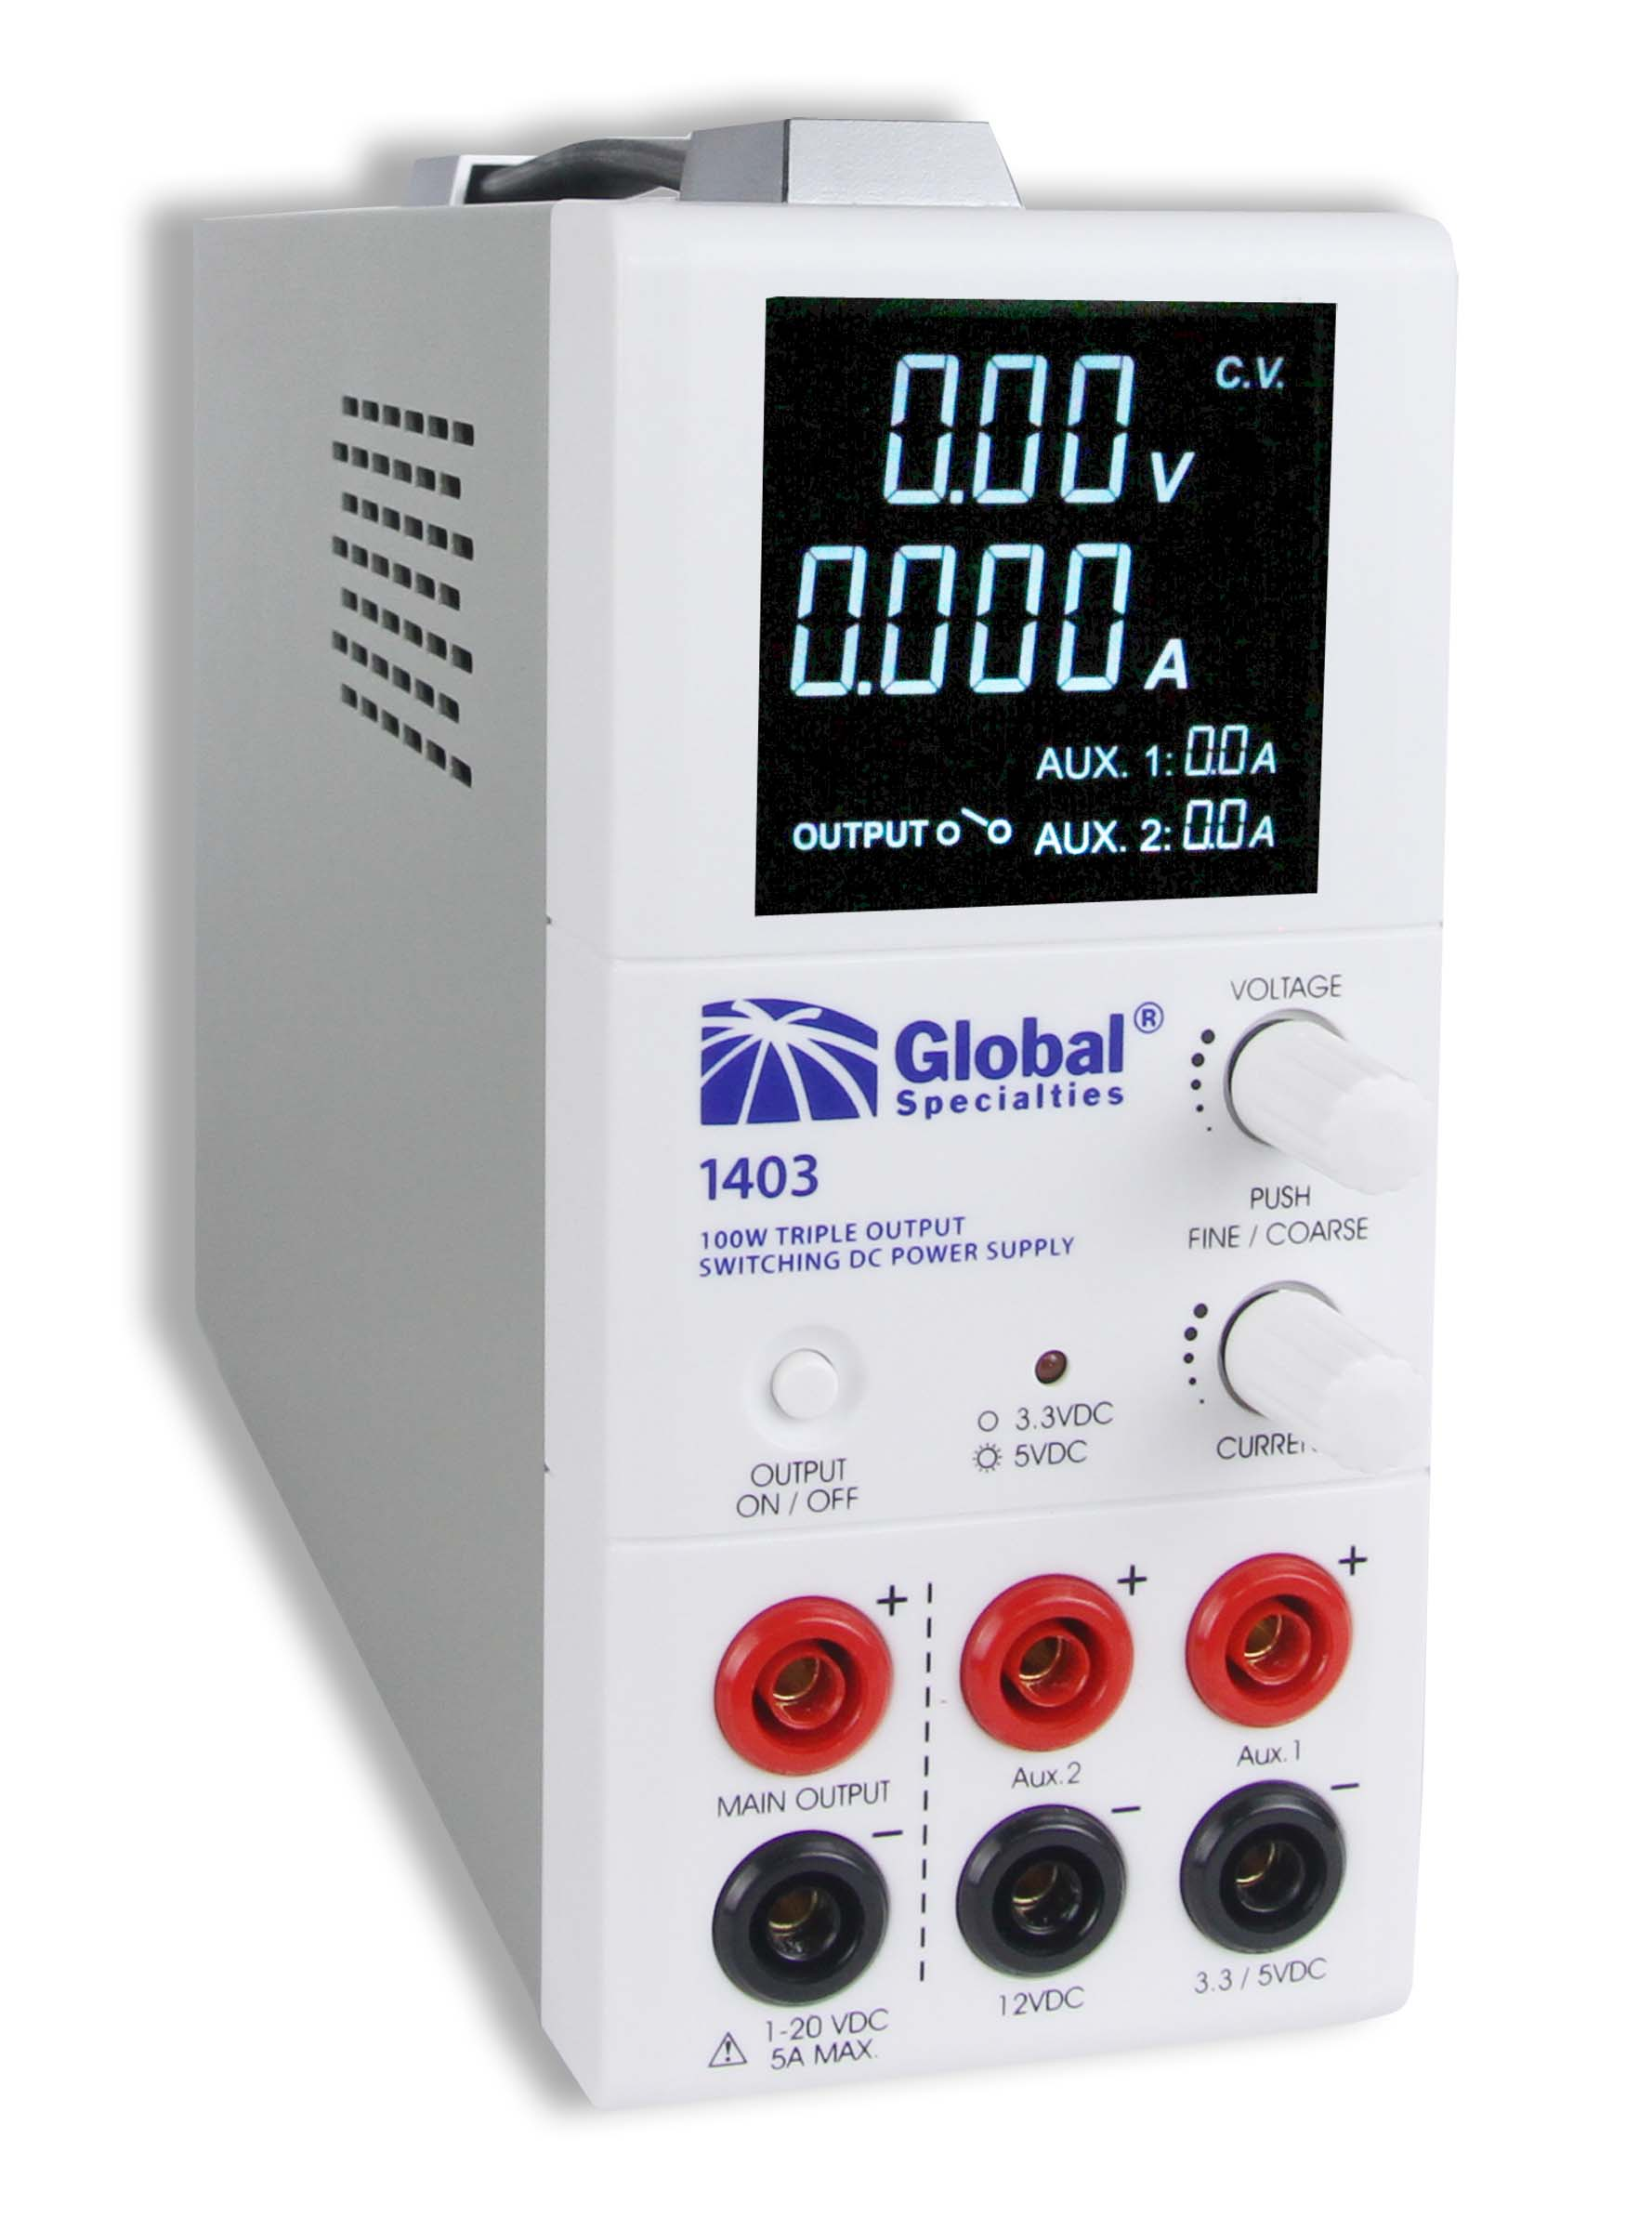 Global Specialties 1403 Triple Output Switching DC Power Supply: 1-20 V, 0-5 A & 3.3/5 V, 2 A & 12 V, 1 A Photo